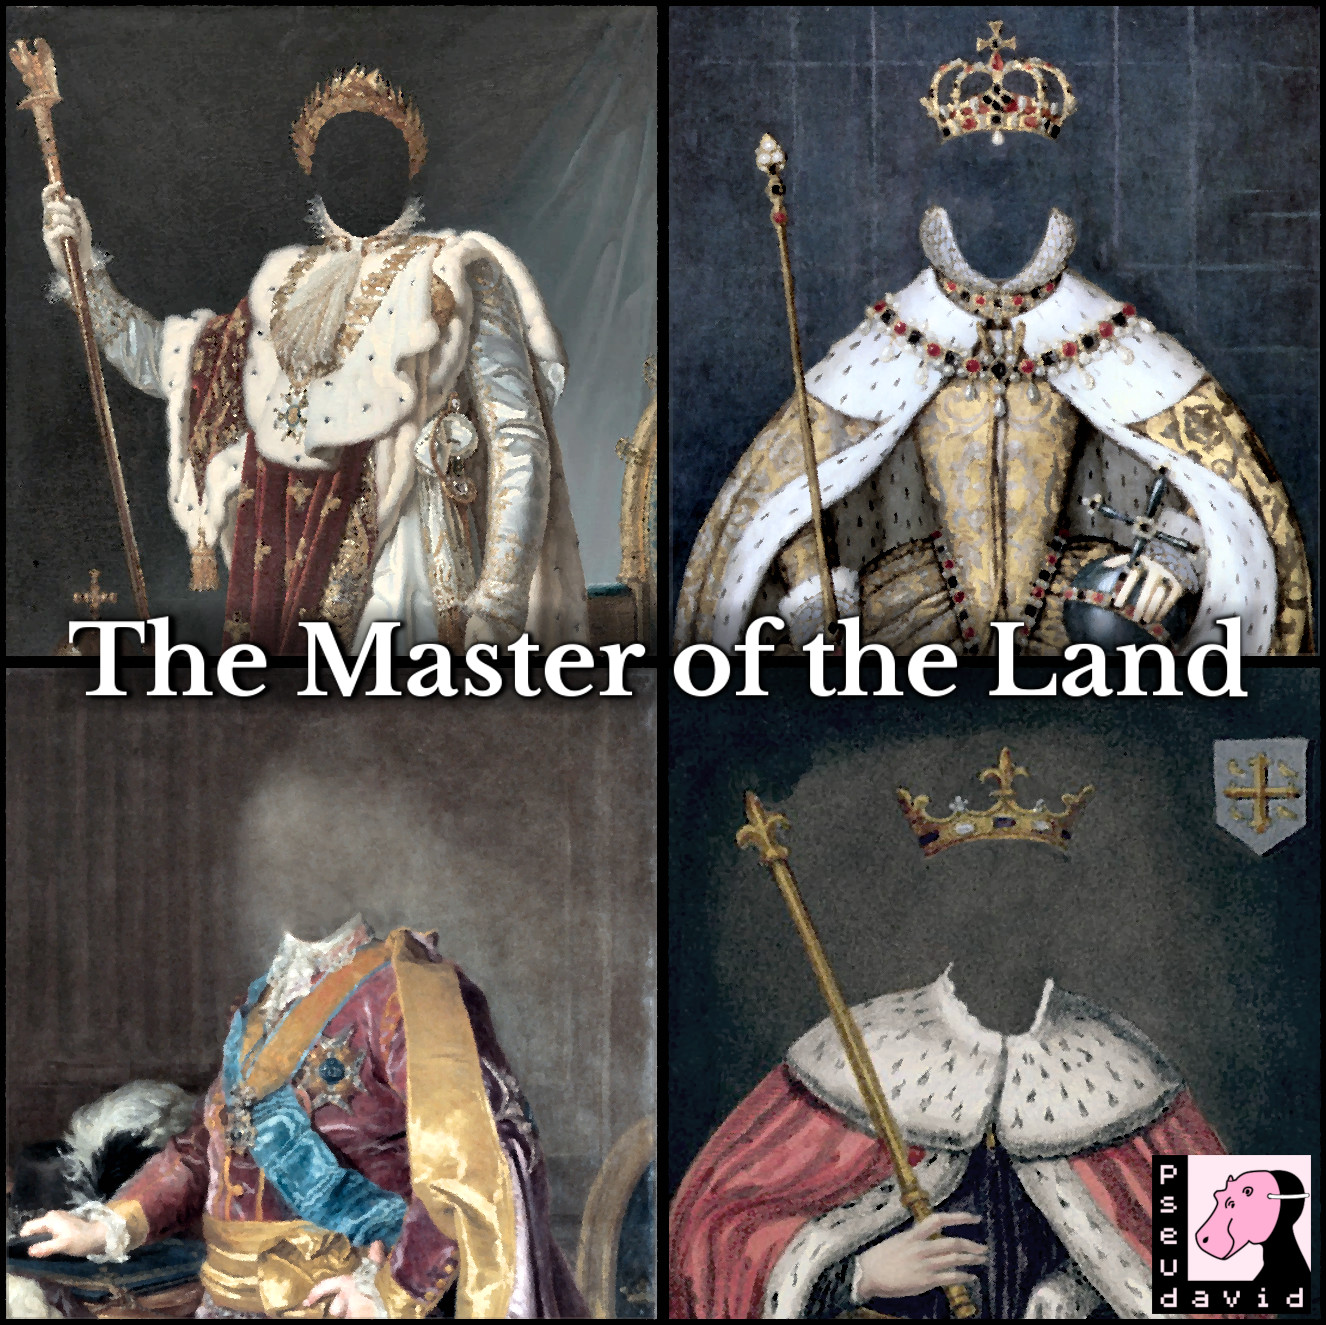 Cover art for The master of the land